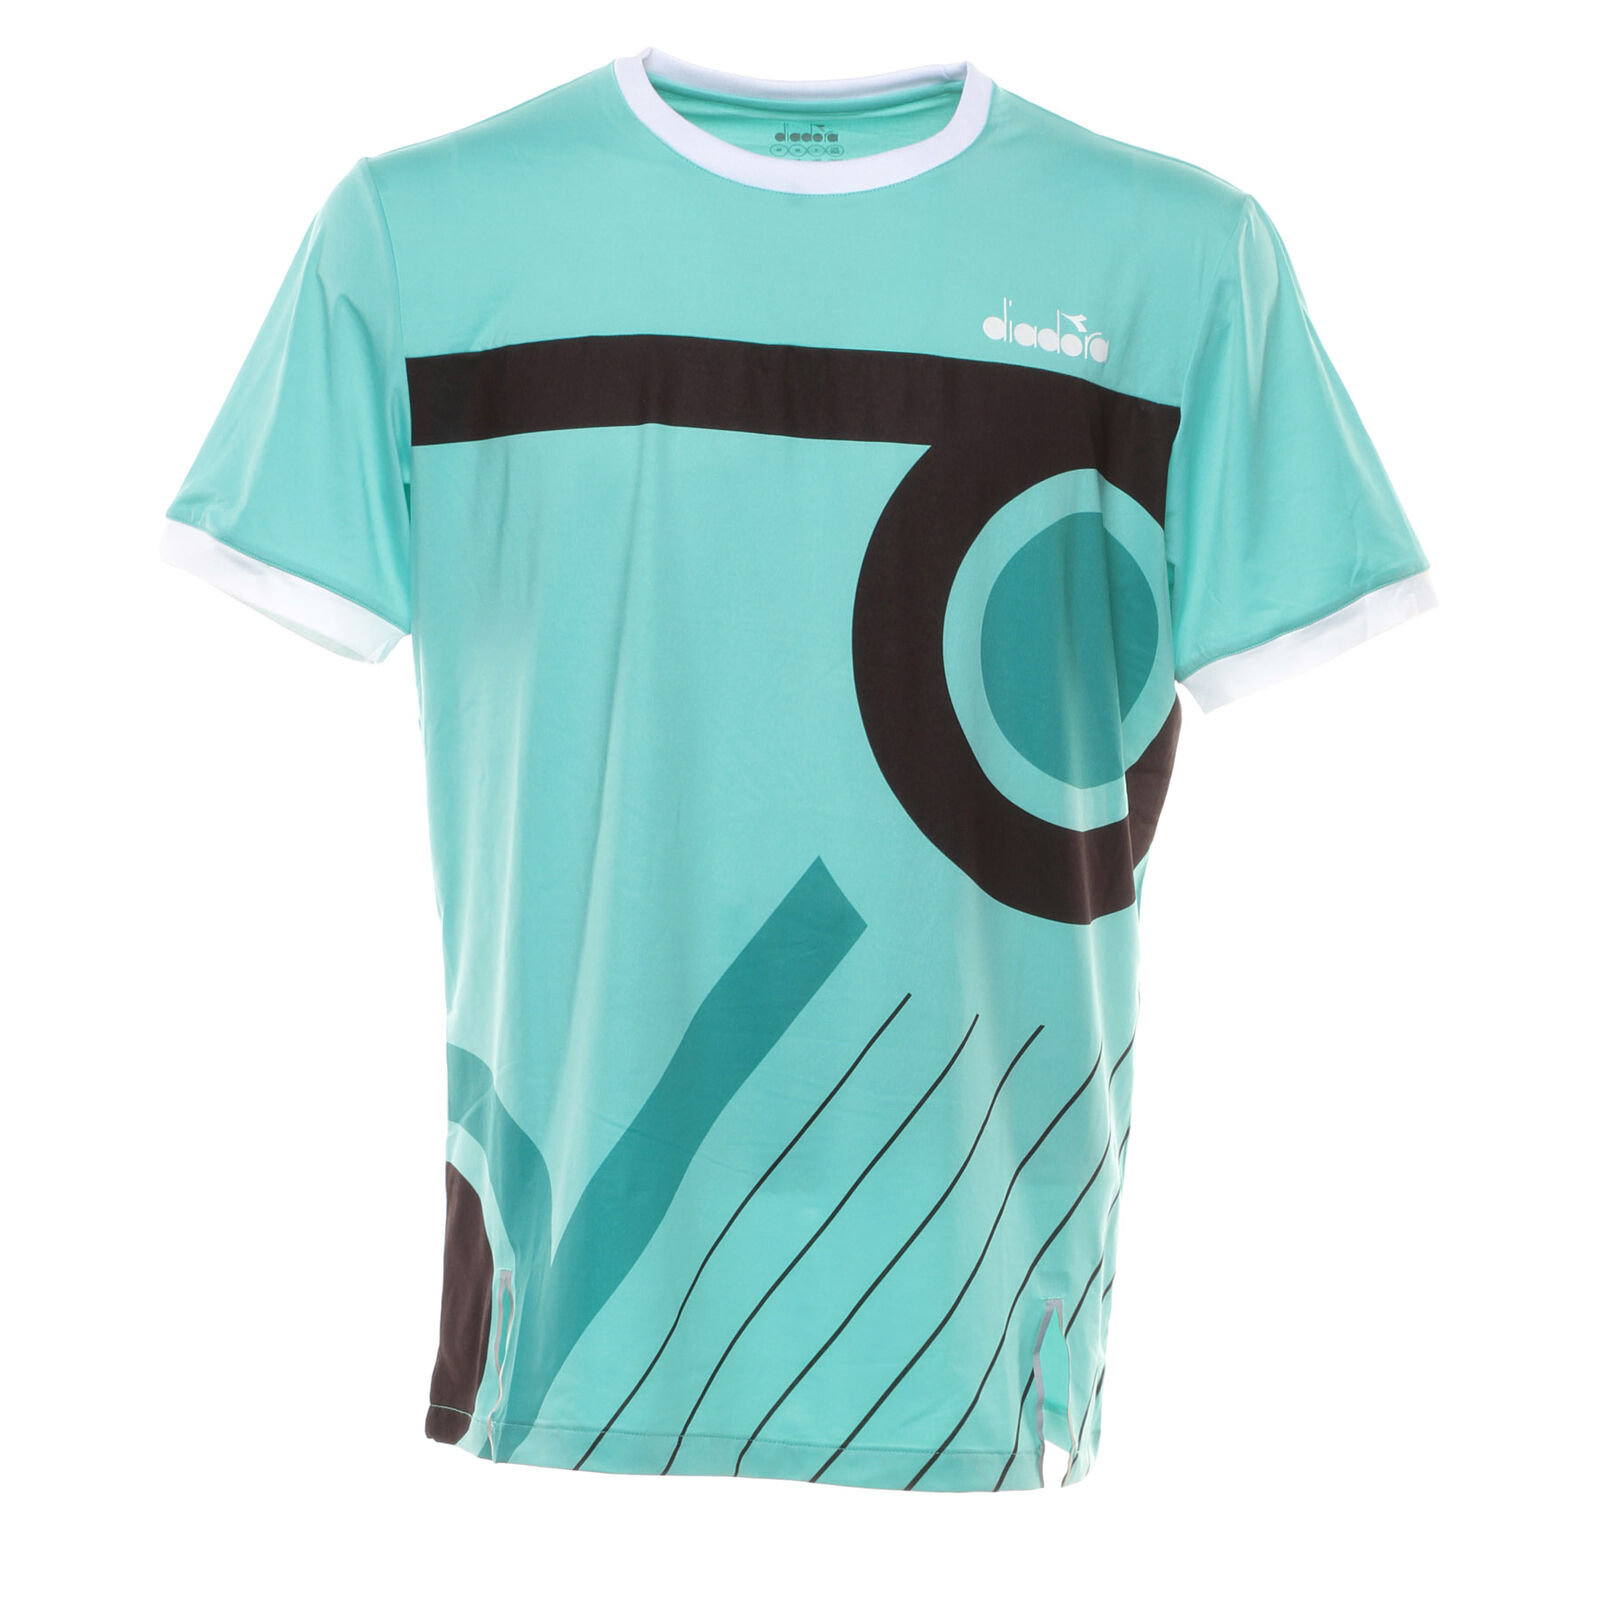 DIADORA T-SHIRT CLAY T-SHIRT TENNIS men 174120 70440